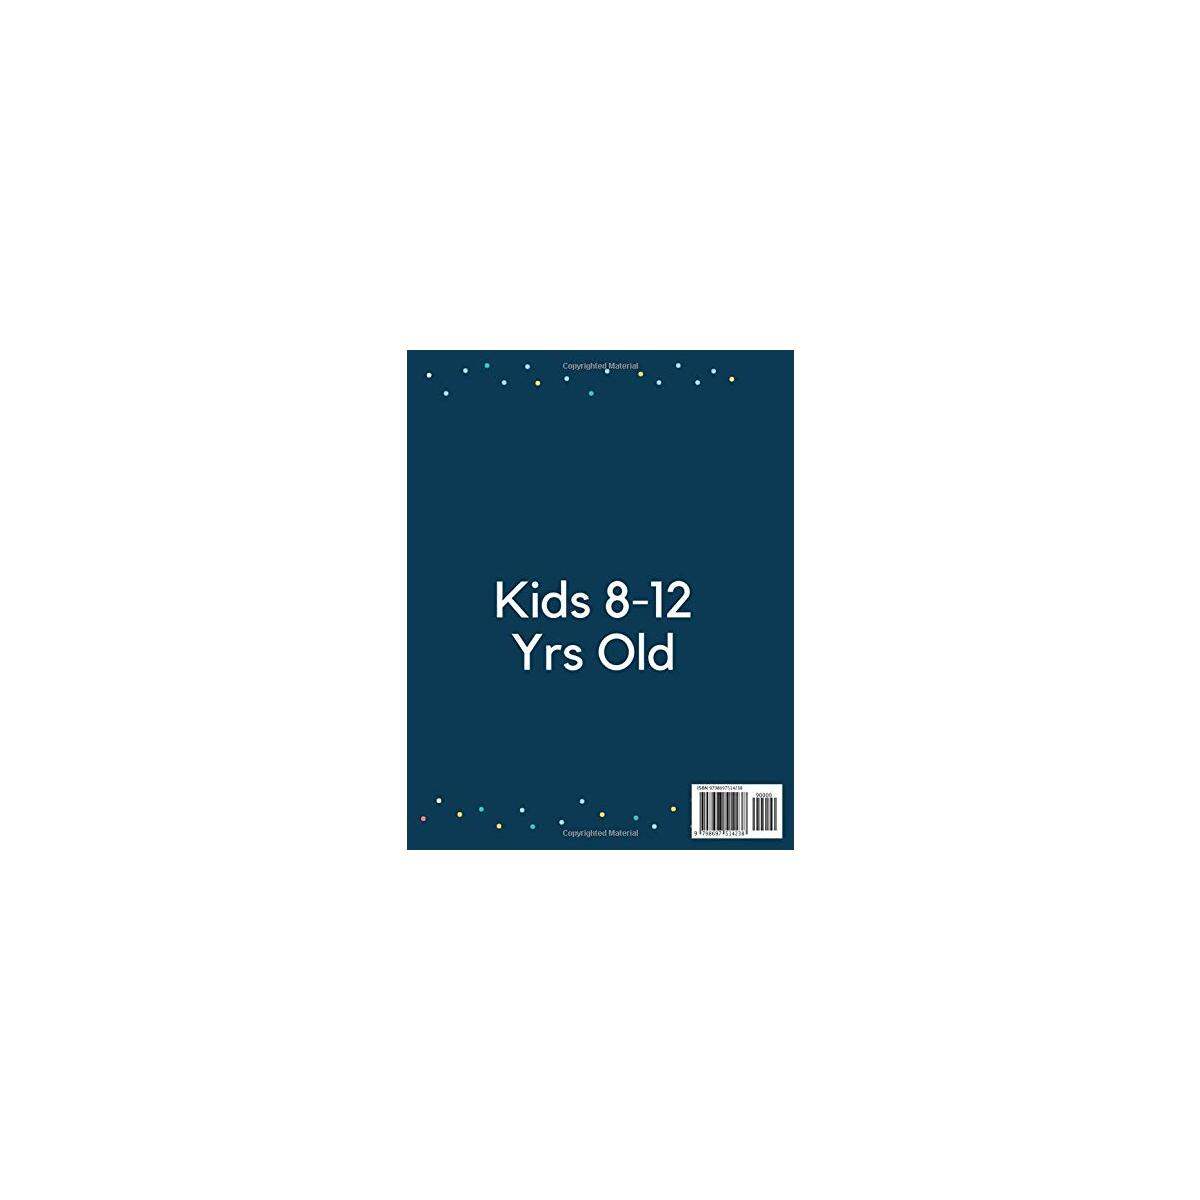 My First Sudoku Book For Kids 8-12 Years Old